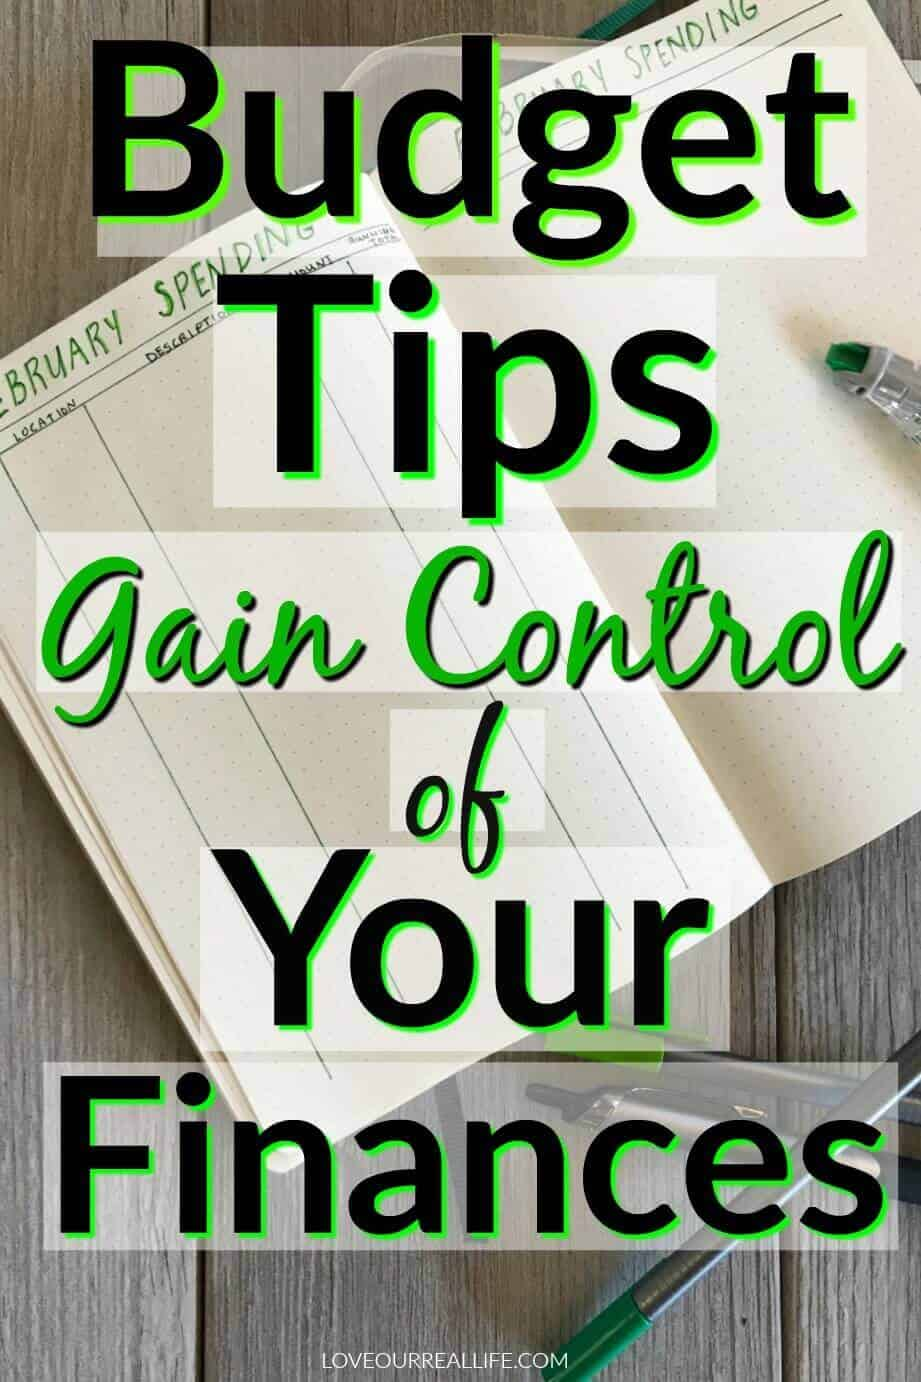 Budget tips Gain Control or your finances.